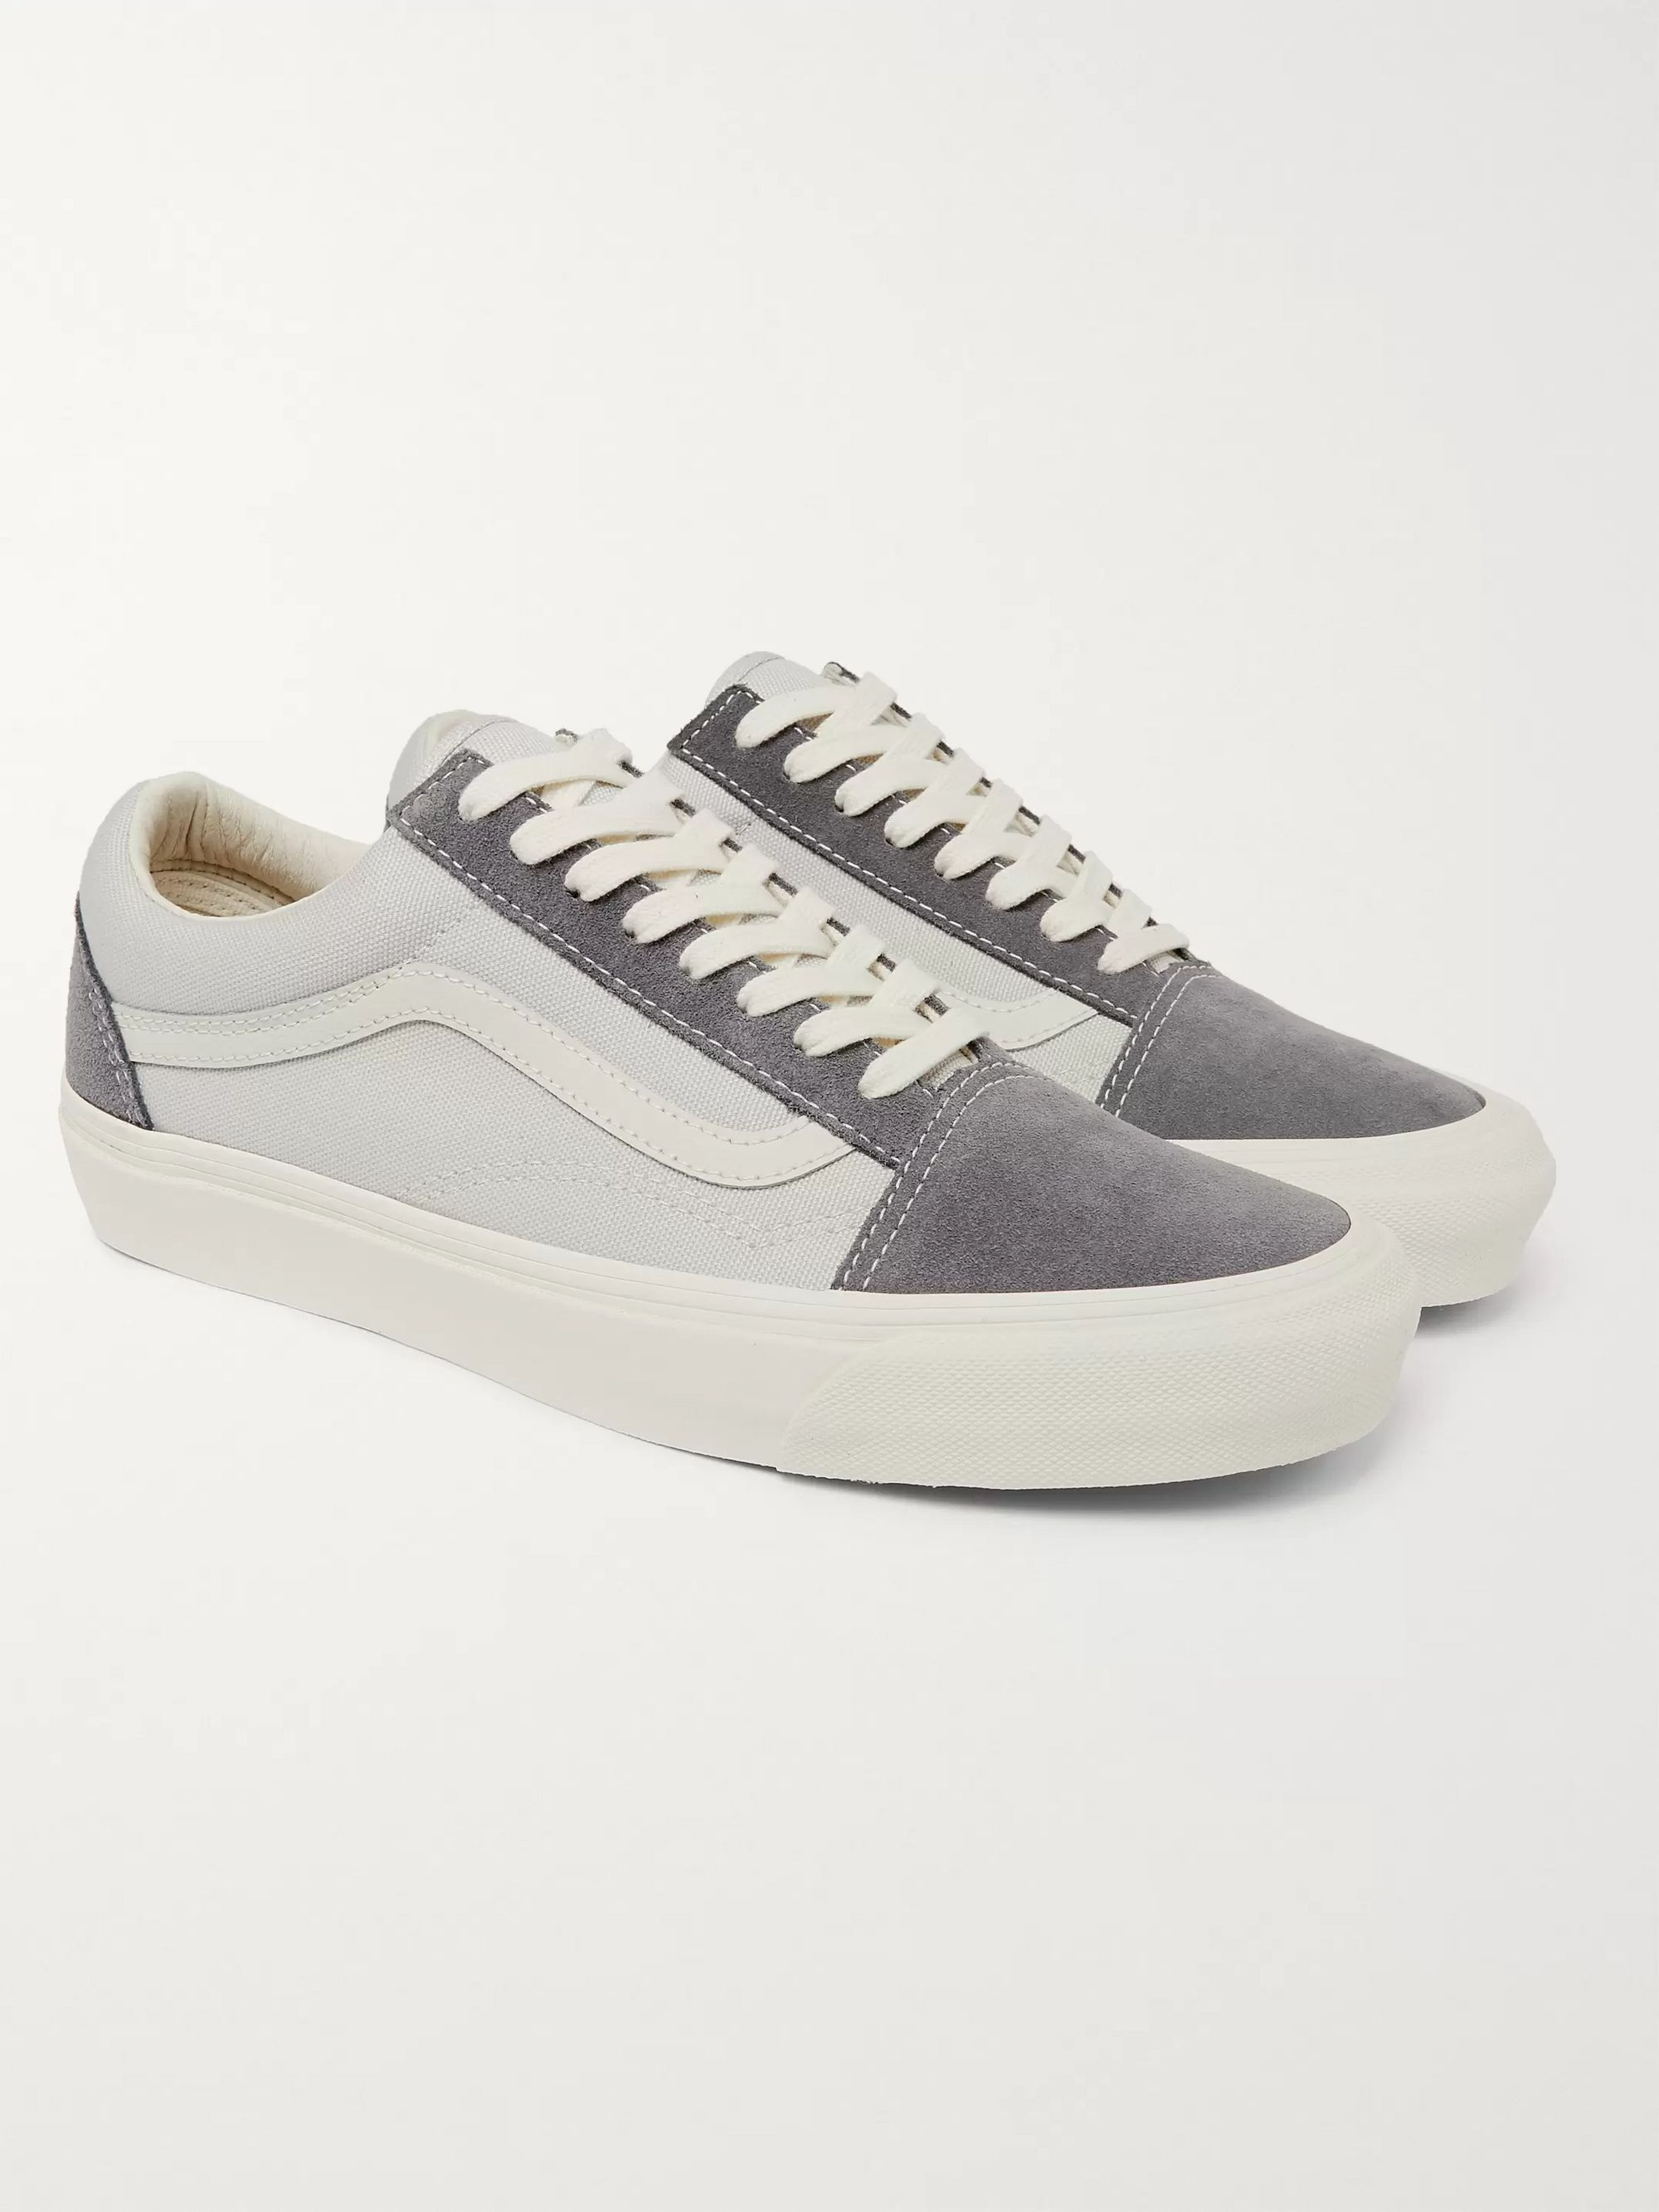 OG Old Skool LX Leather Trimmed Suede and Canvas Sneakers